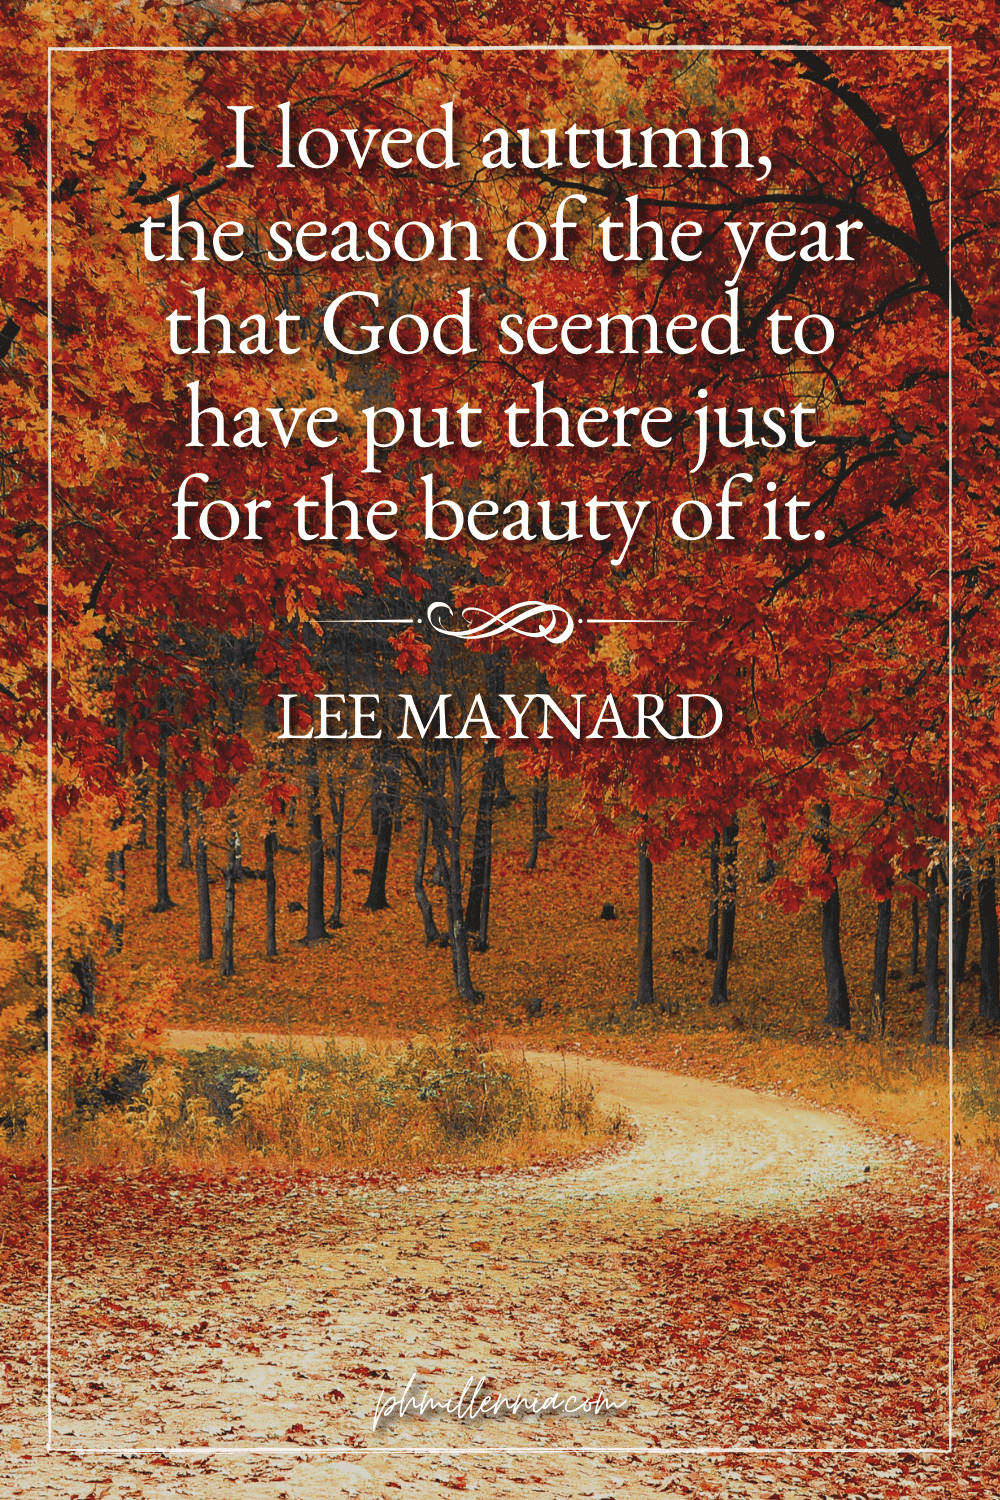 """A graphic featuring an autumn quote/fall saying over an image of a pathway through trees and woods with autumn/fall season foliage, designed as a Pinterest Pin for the article """"199 Autumn Quotes to Fall Deeply and Spectacularly in Love With"""" on phmillennia.com"""